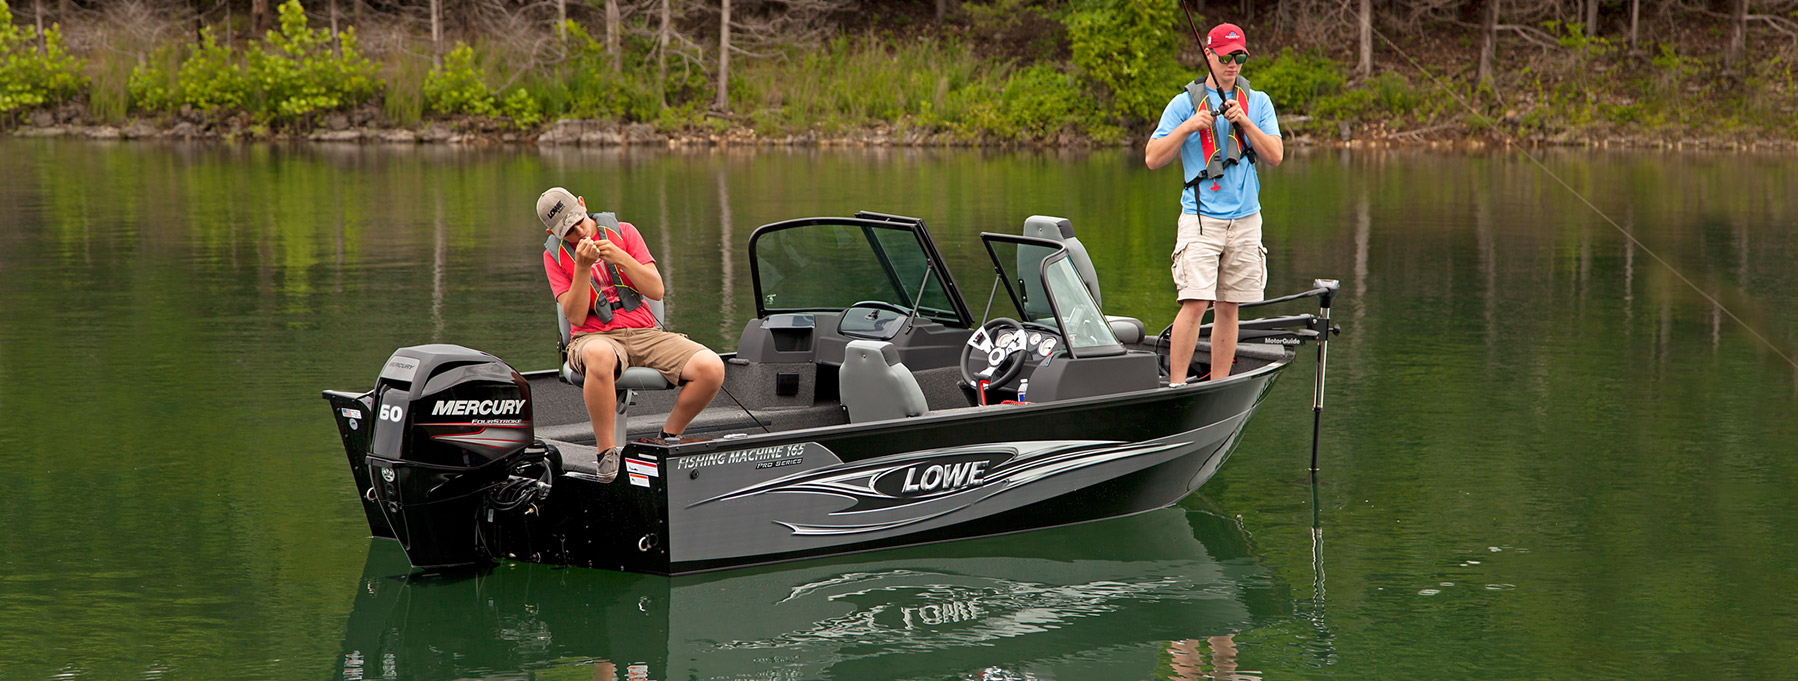 2016 boat main_81923 2018 lowe boat's fm 165 pro wt deep v, new aluminum boats and dealers lowe boat wiring diagram at crackthecode.co